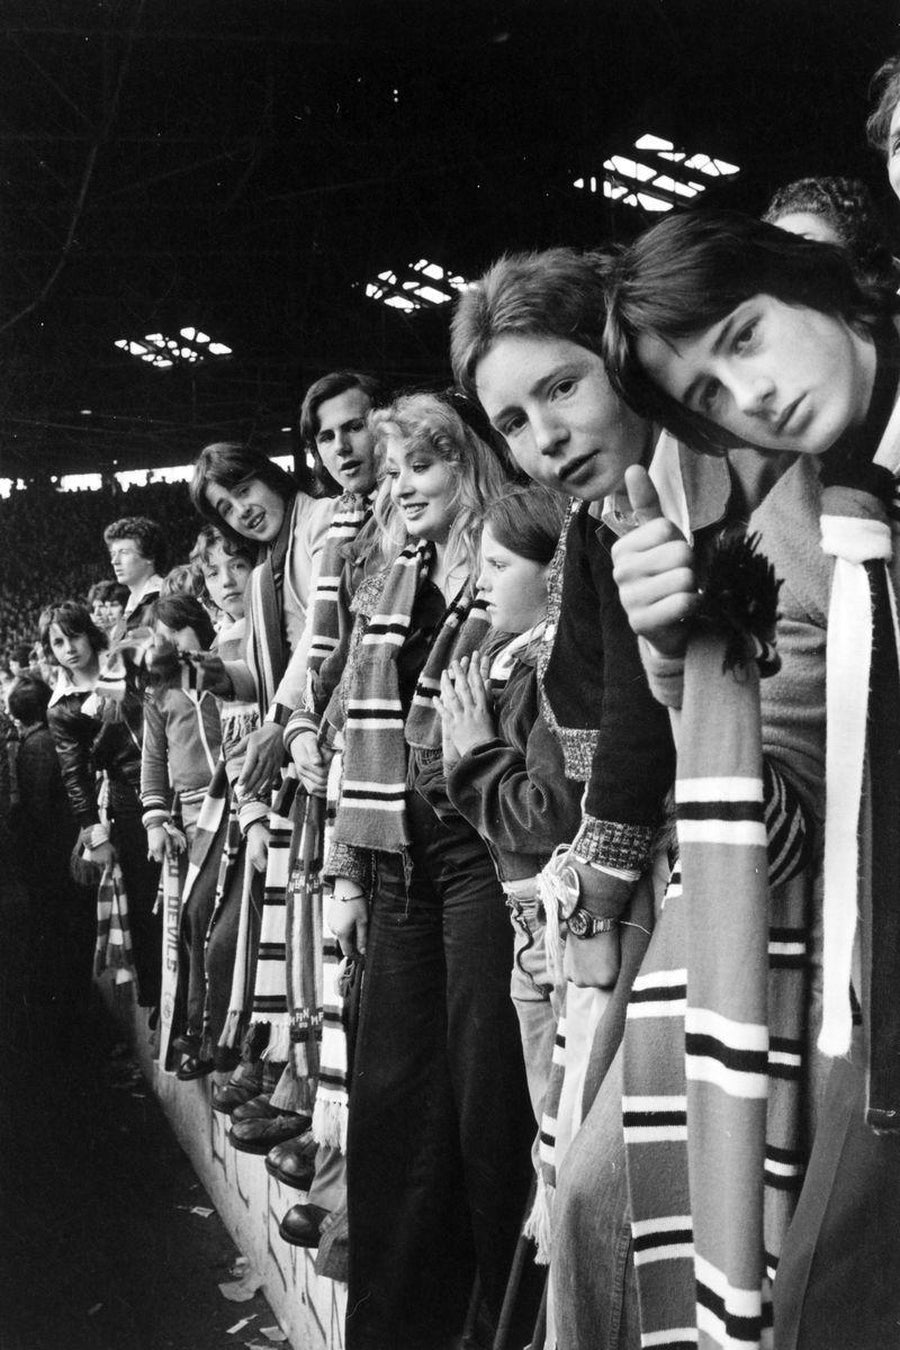 Manchester United Fans on the Terraces by Iain S. P. Reid, c. 1977